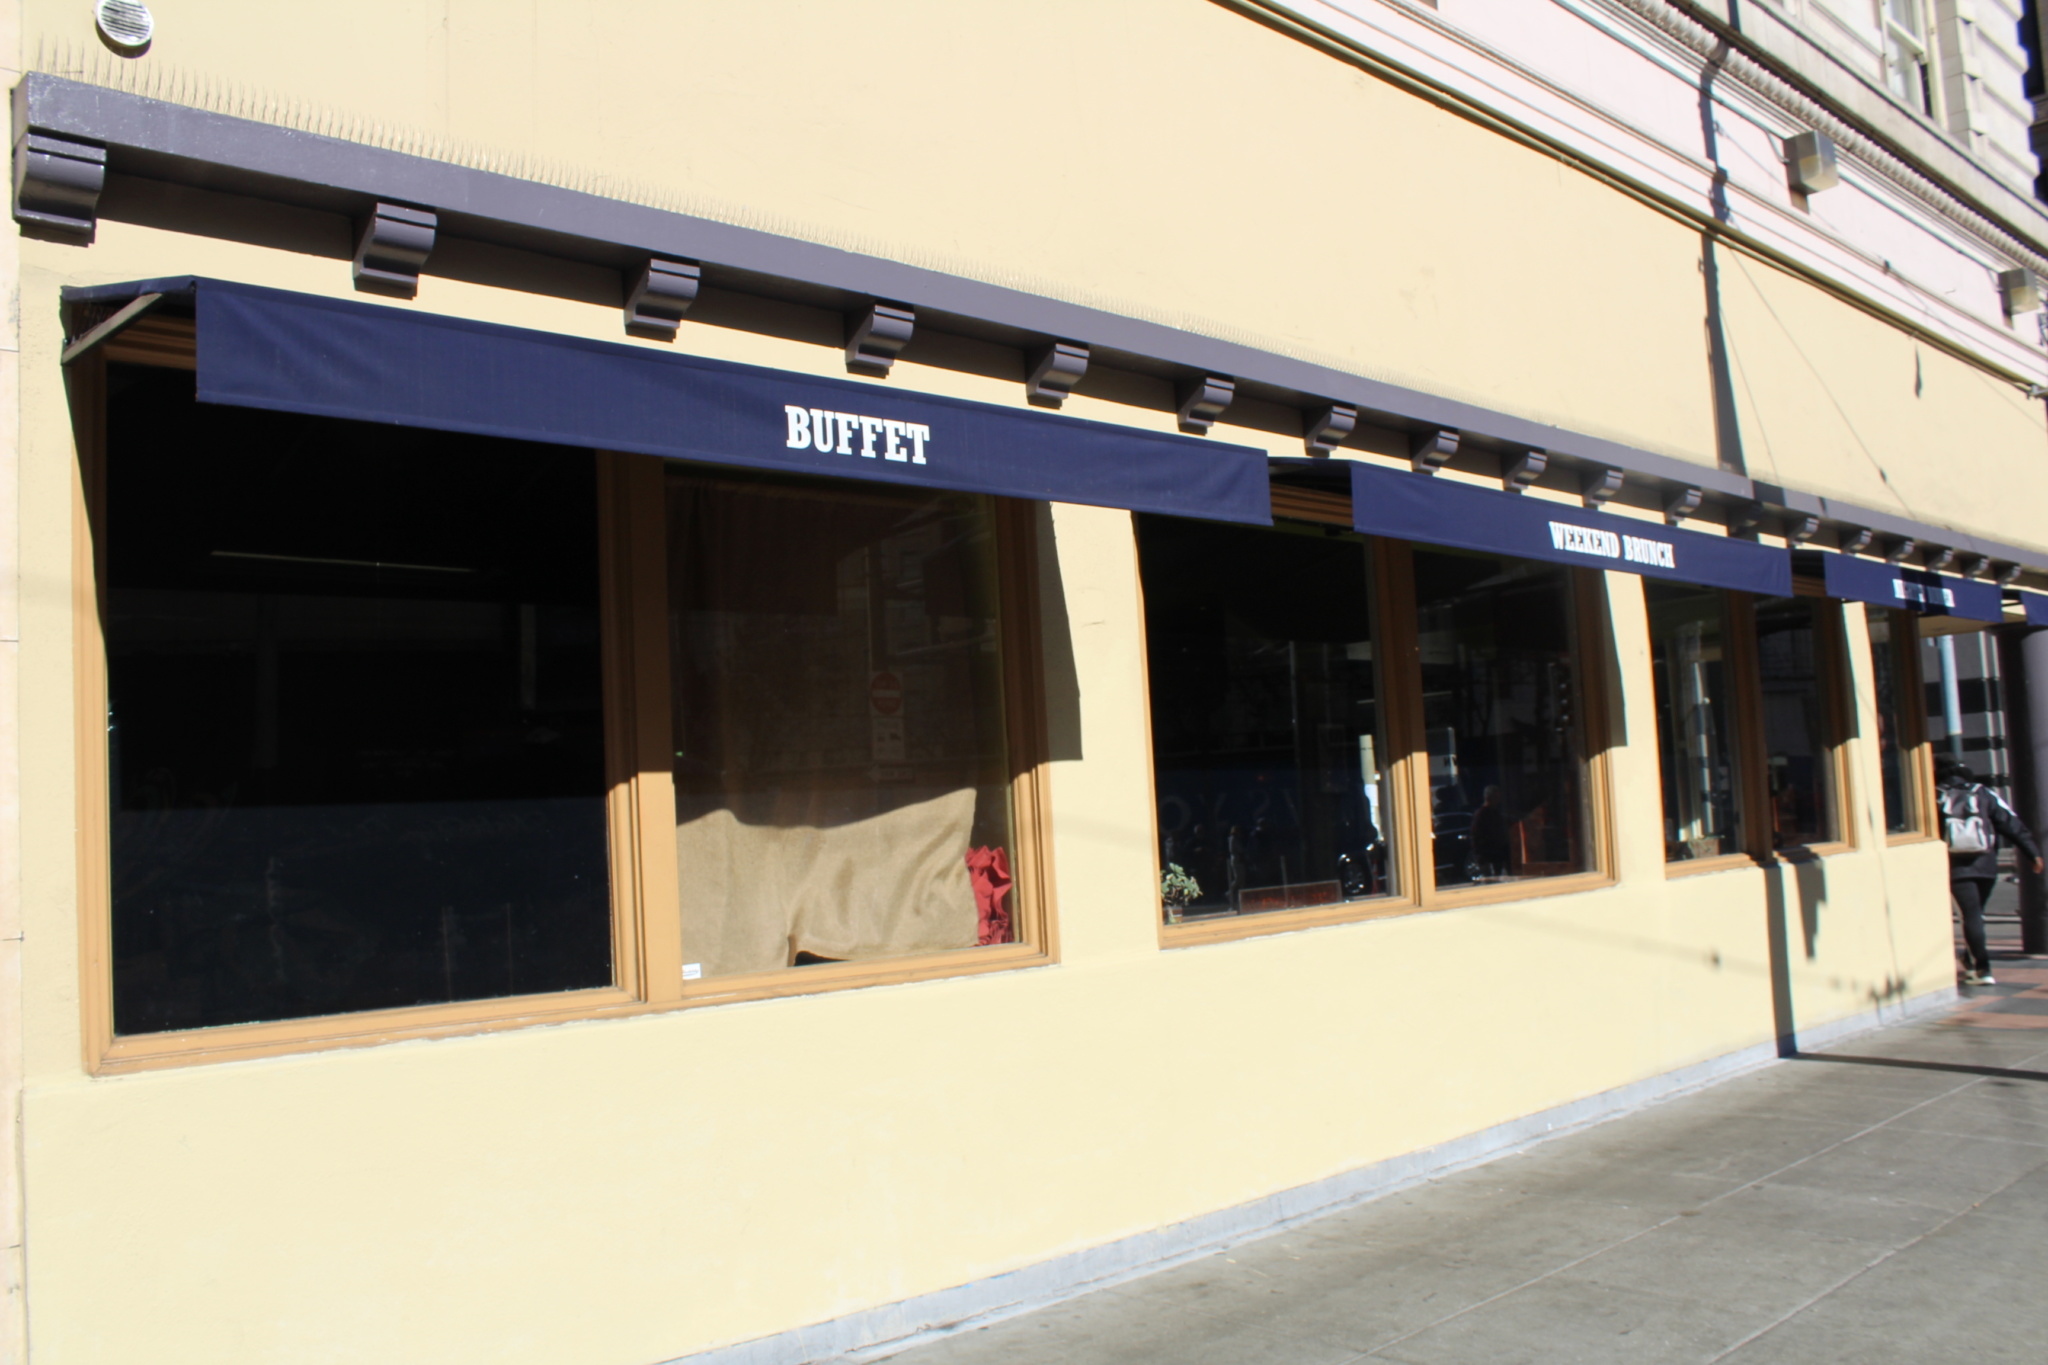 fabricate awning repair awnings can well aesthetically medlink in signs pleasing shapes as types of design and complex vinyl an forman styles backlit variety a window will standard